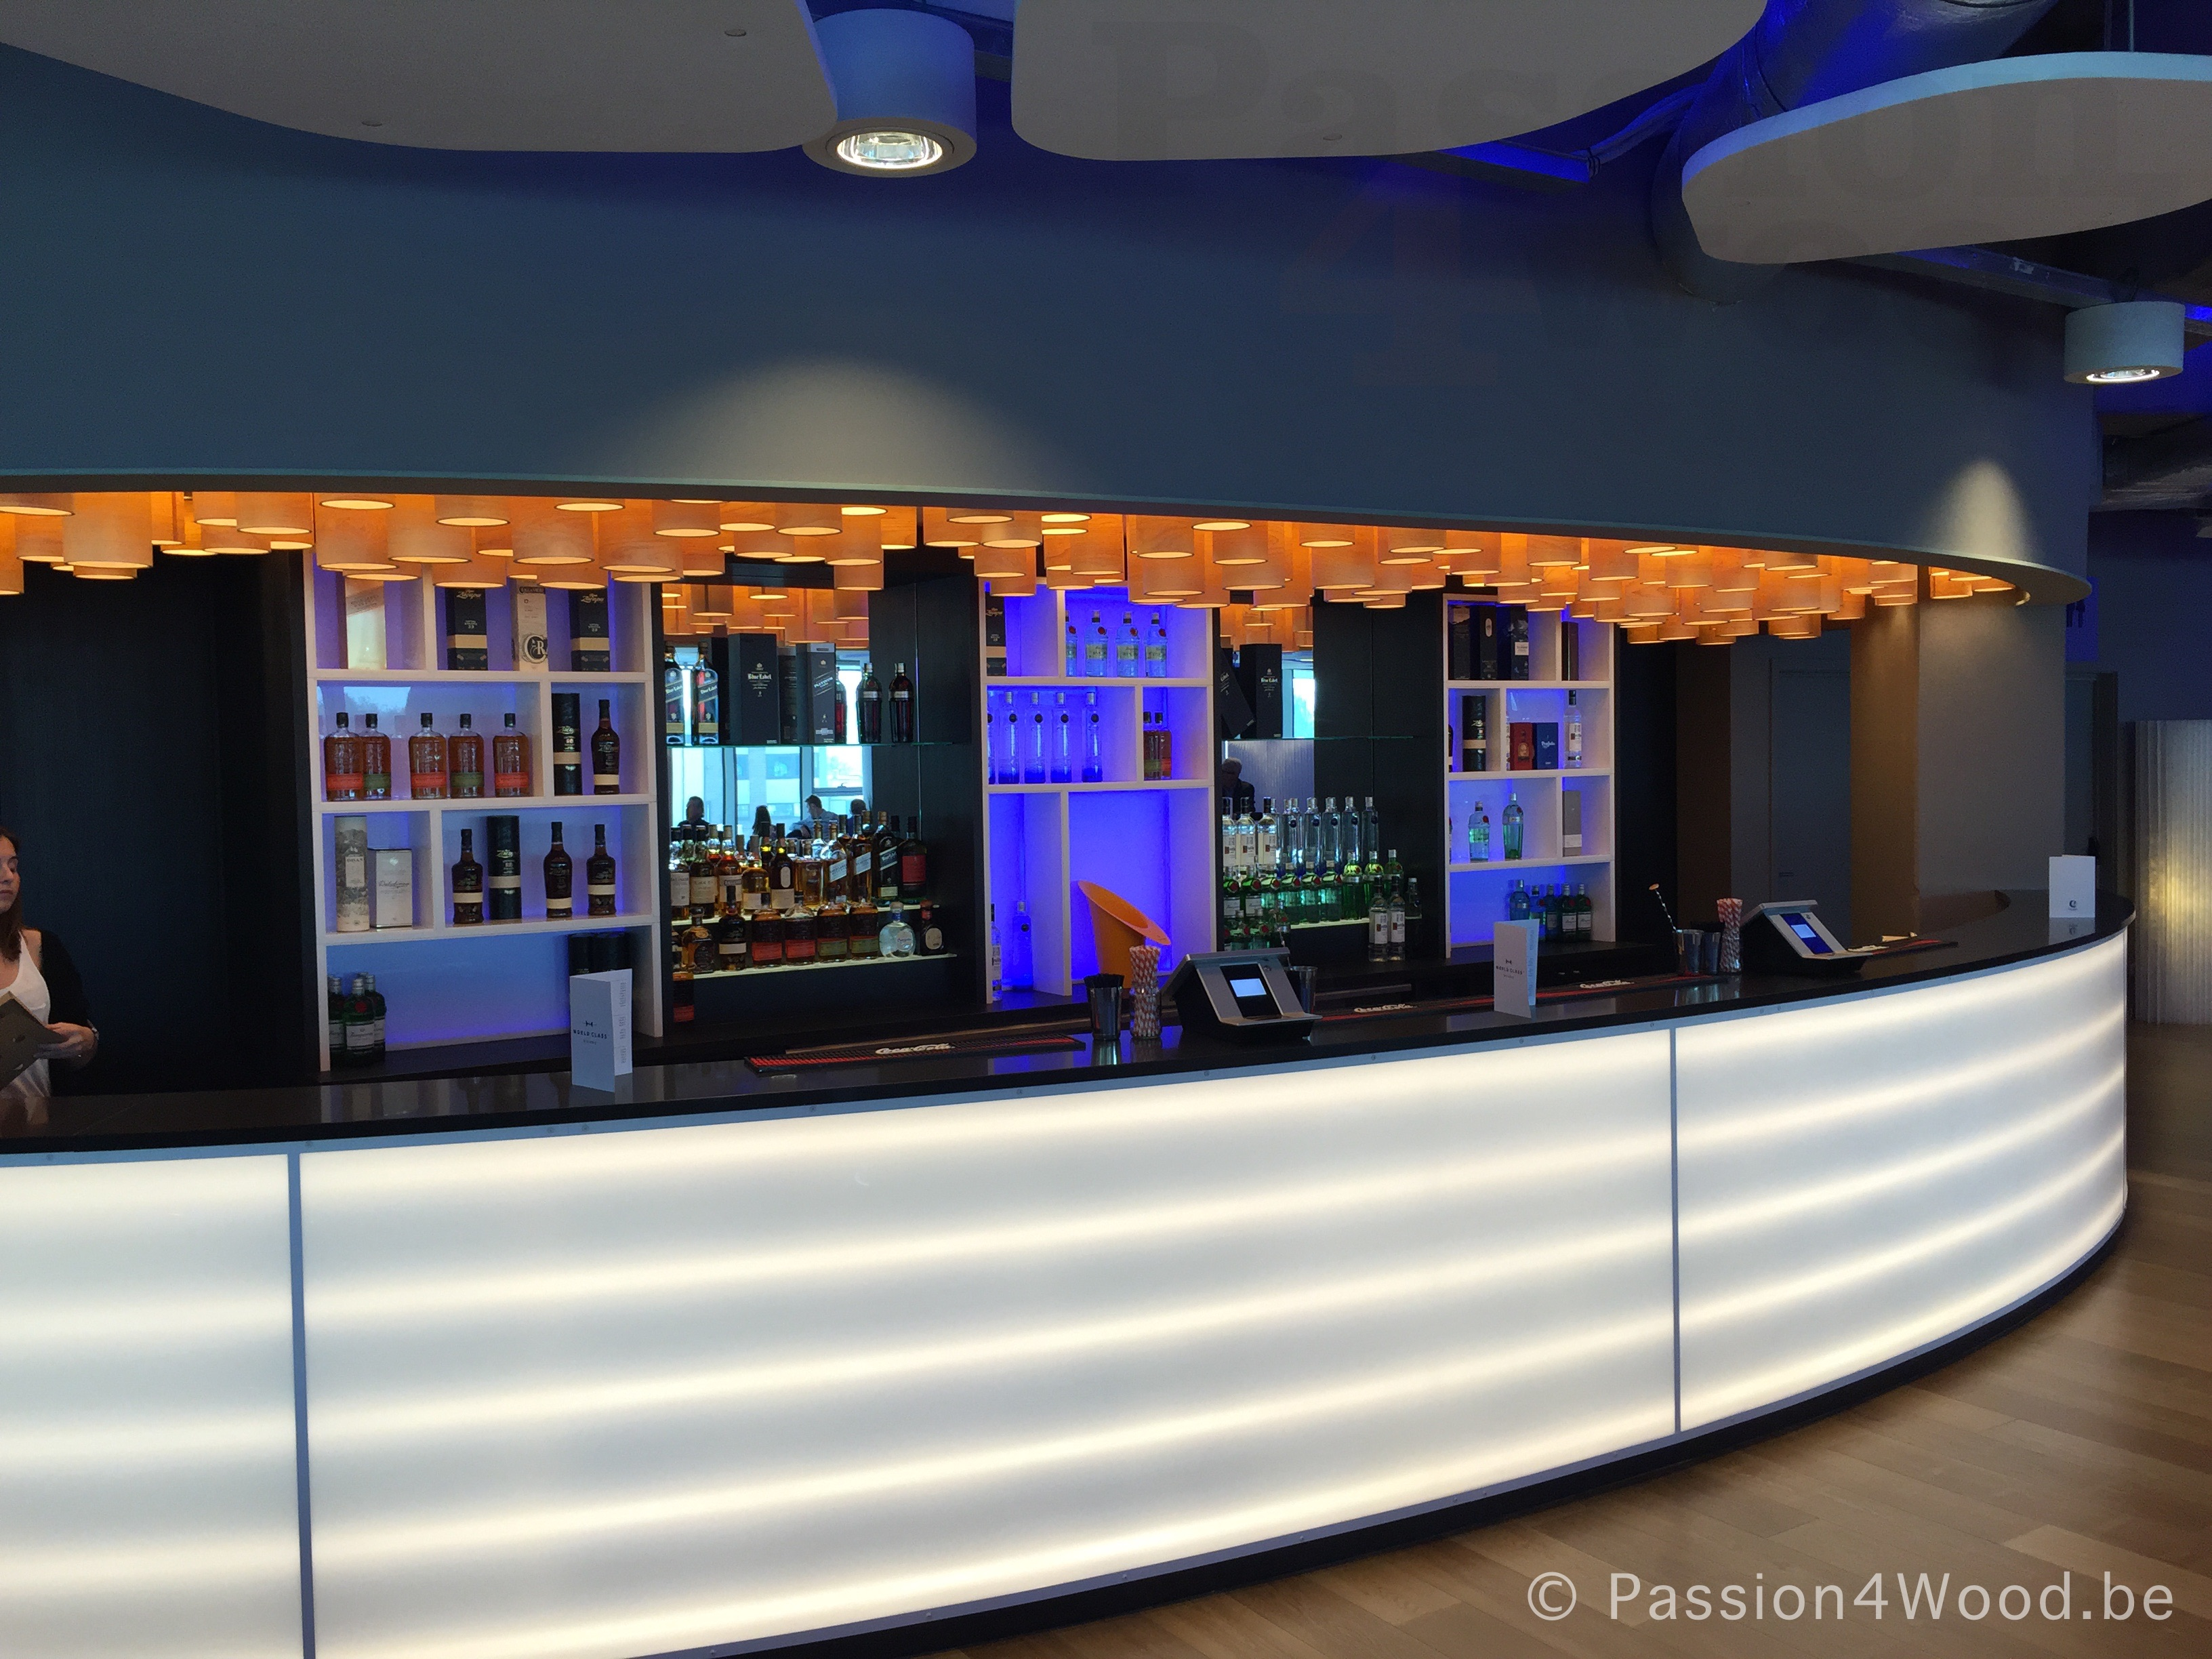 Kaa Gent Ghelamco lounge - Bar - more than 200 tube lamps mounted as ceiling lights giving a fantastic sculptural experience 2